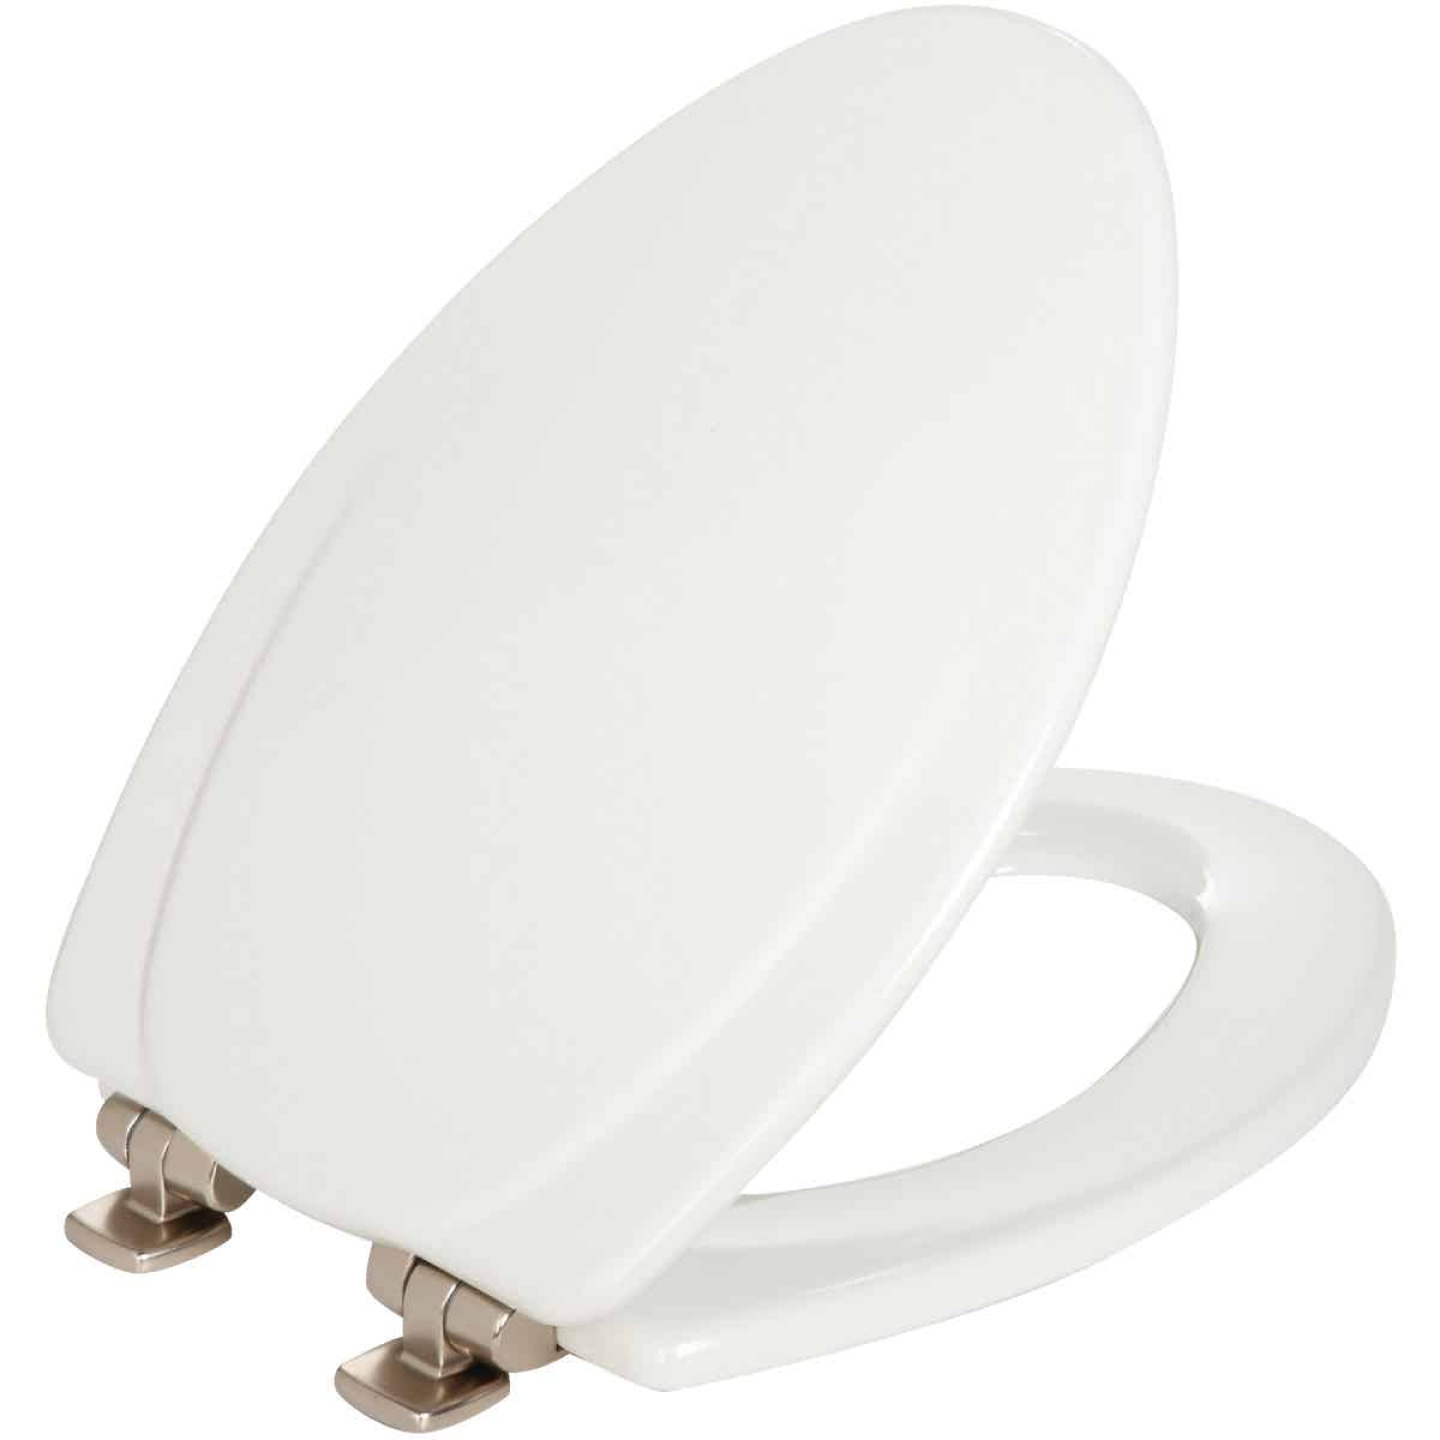 Mayfair Elongated Closed Front Slow Close White Wood Toilet Seat Image 1